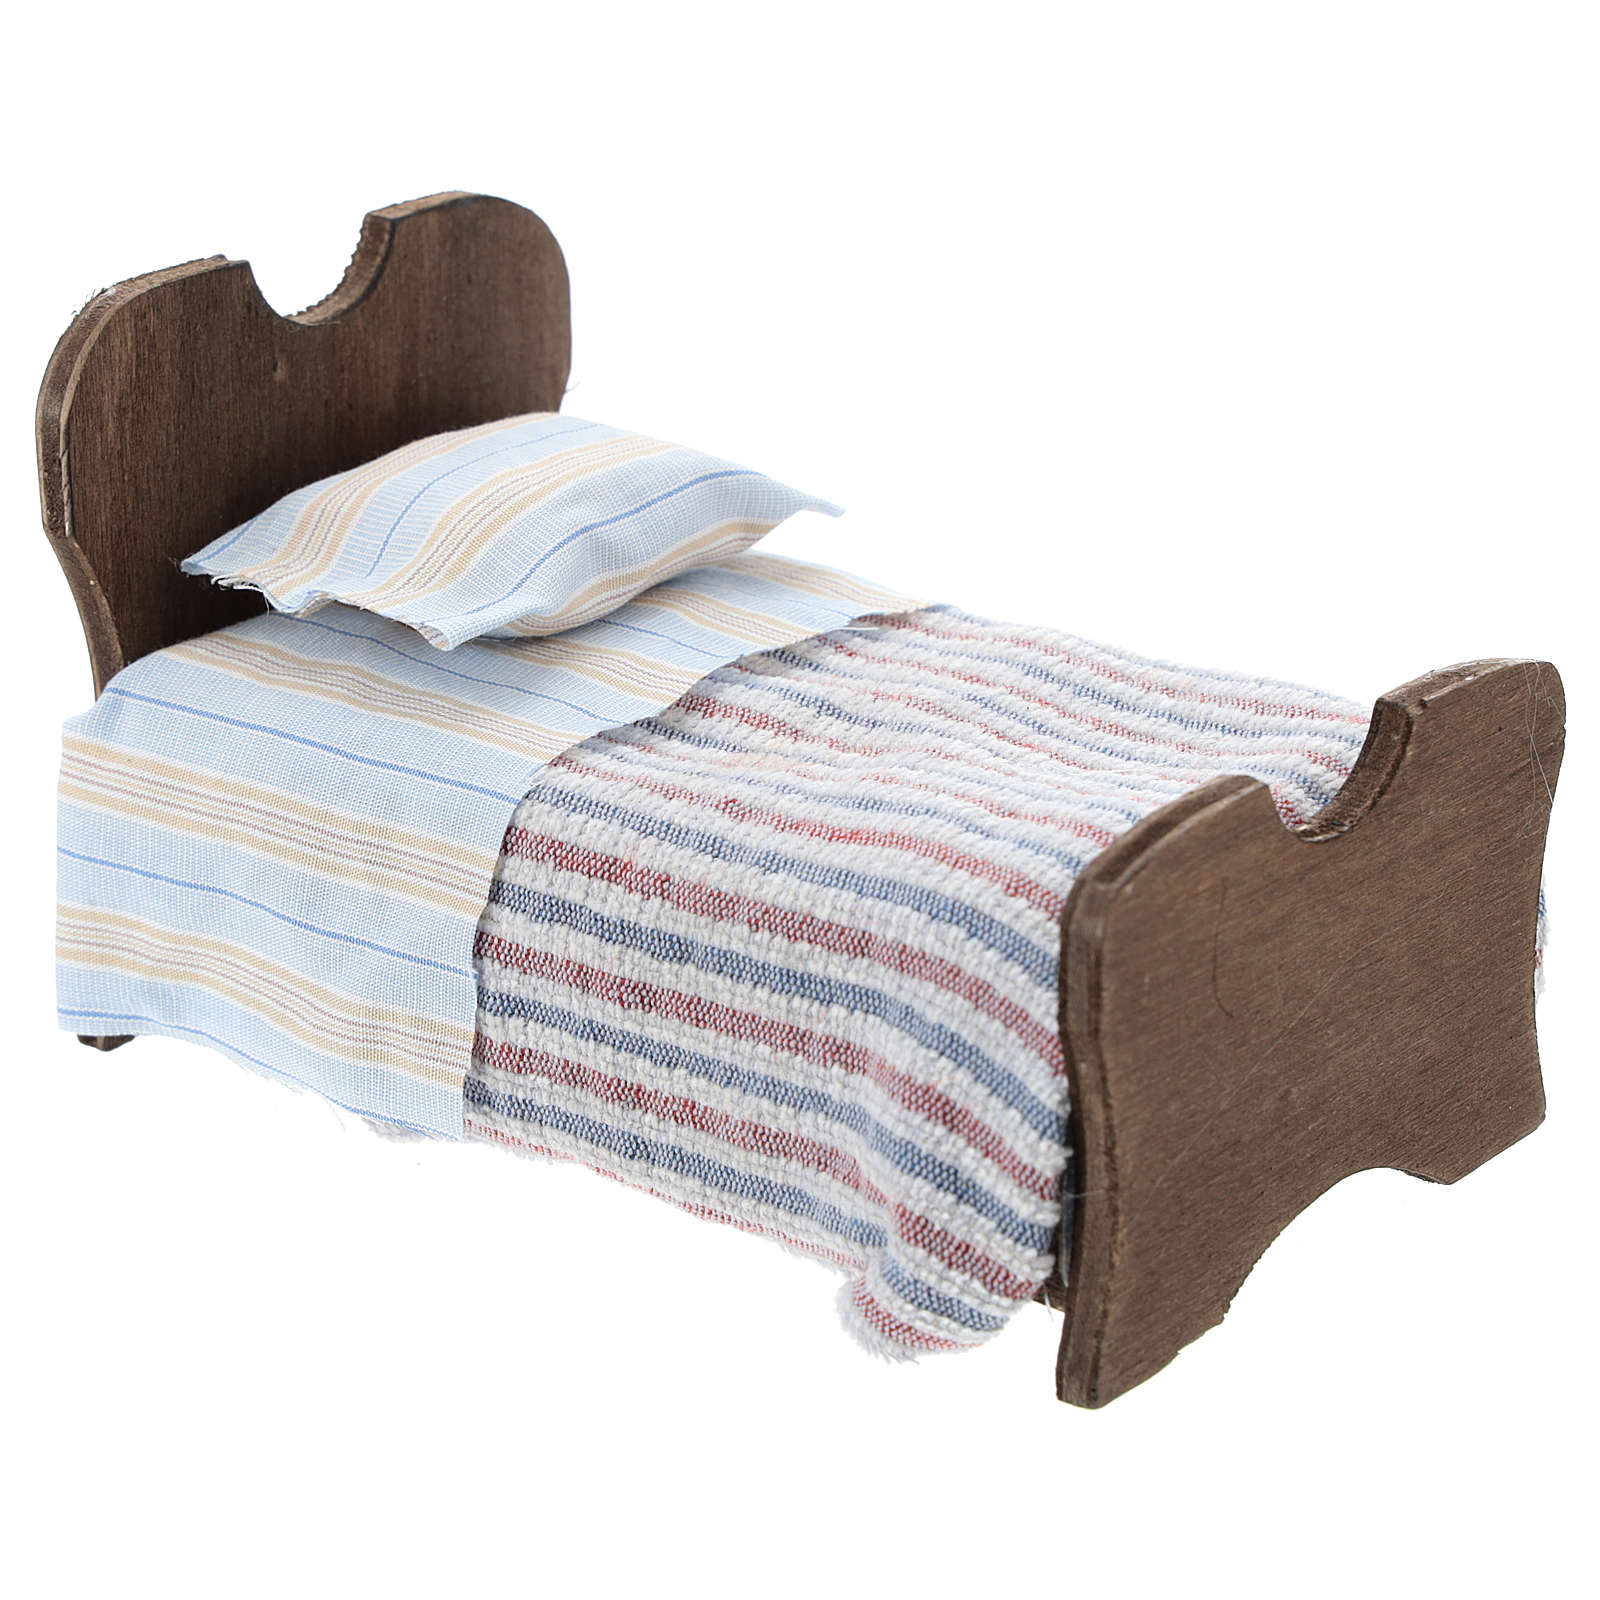 Wooden bed with fabric sheets and fabric 10 cm 4